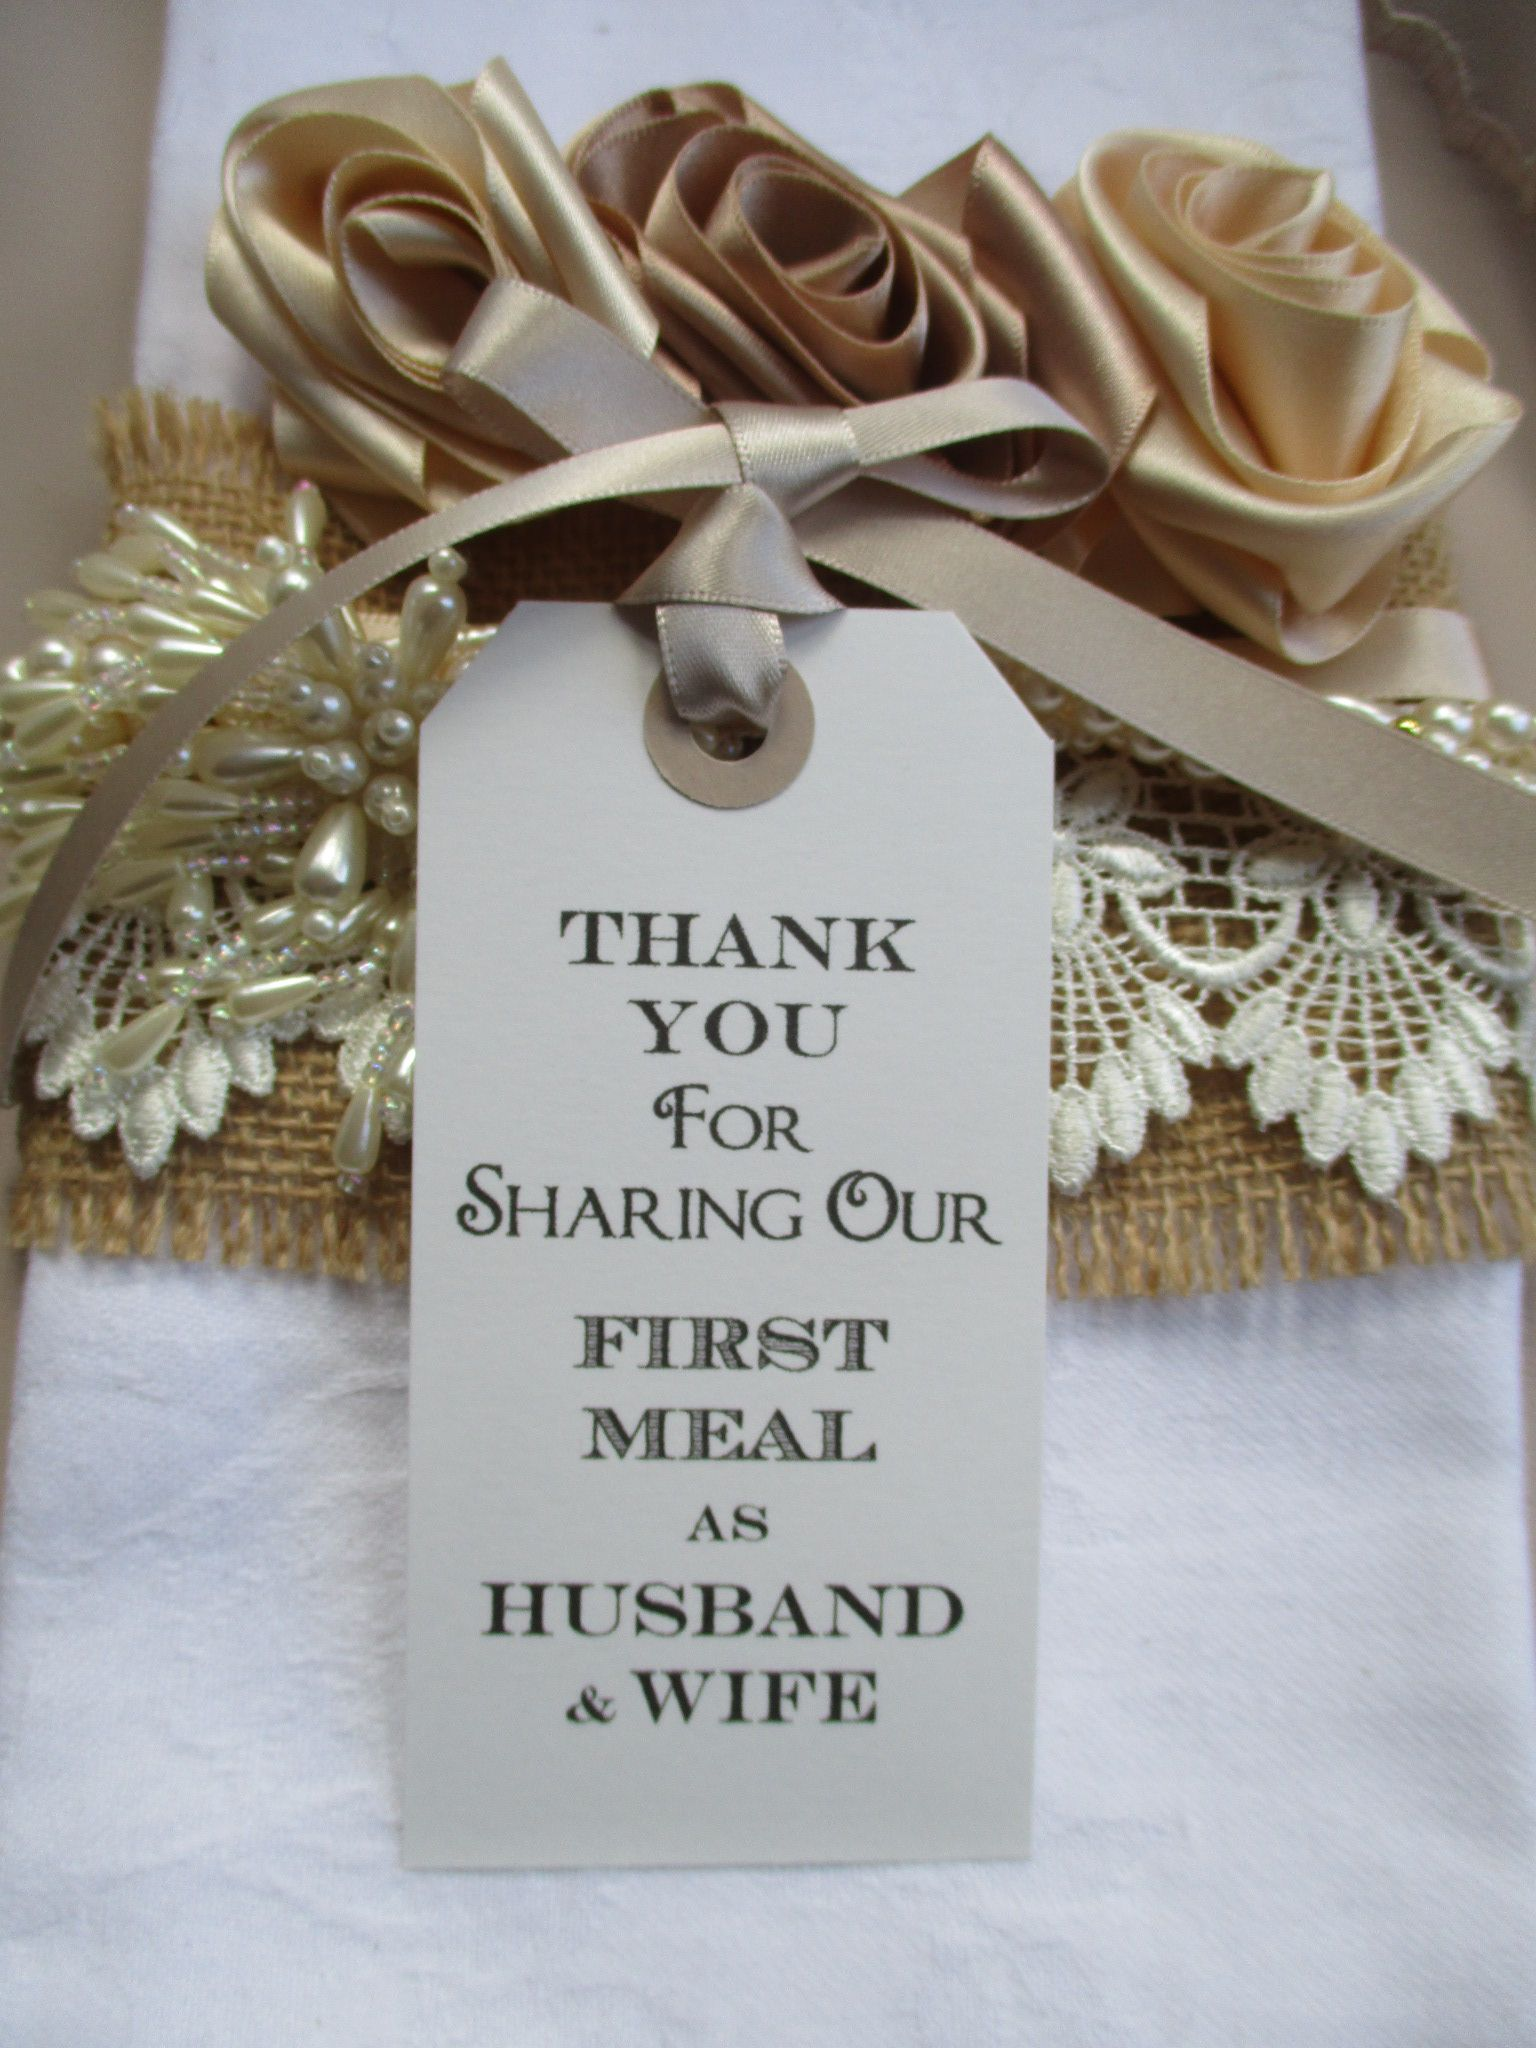 10 Thank You For Sharing Our First Meal As Husband Wife Place Cards Napkin Tie White